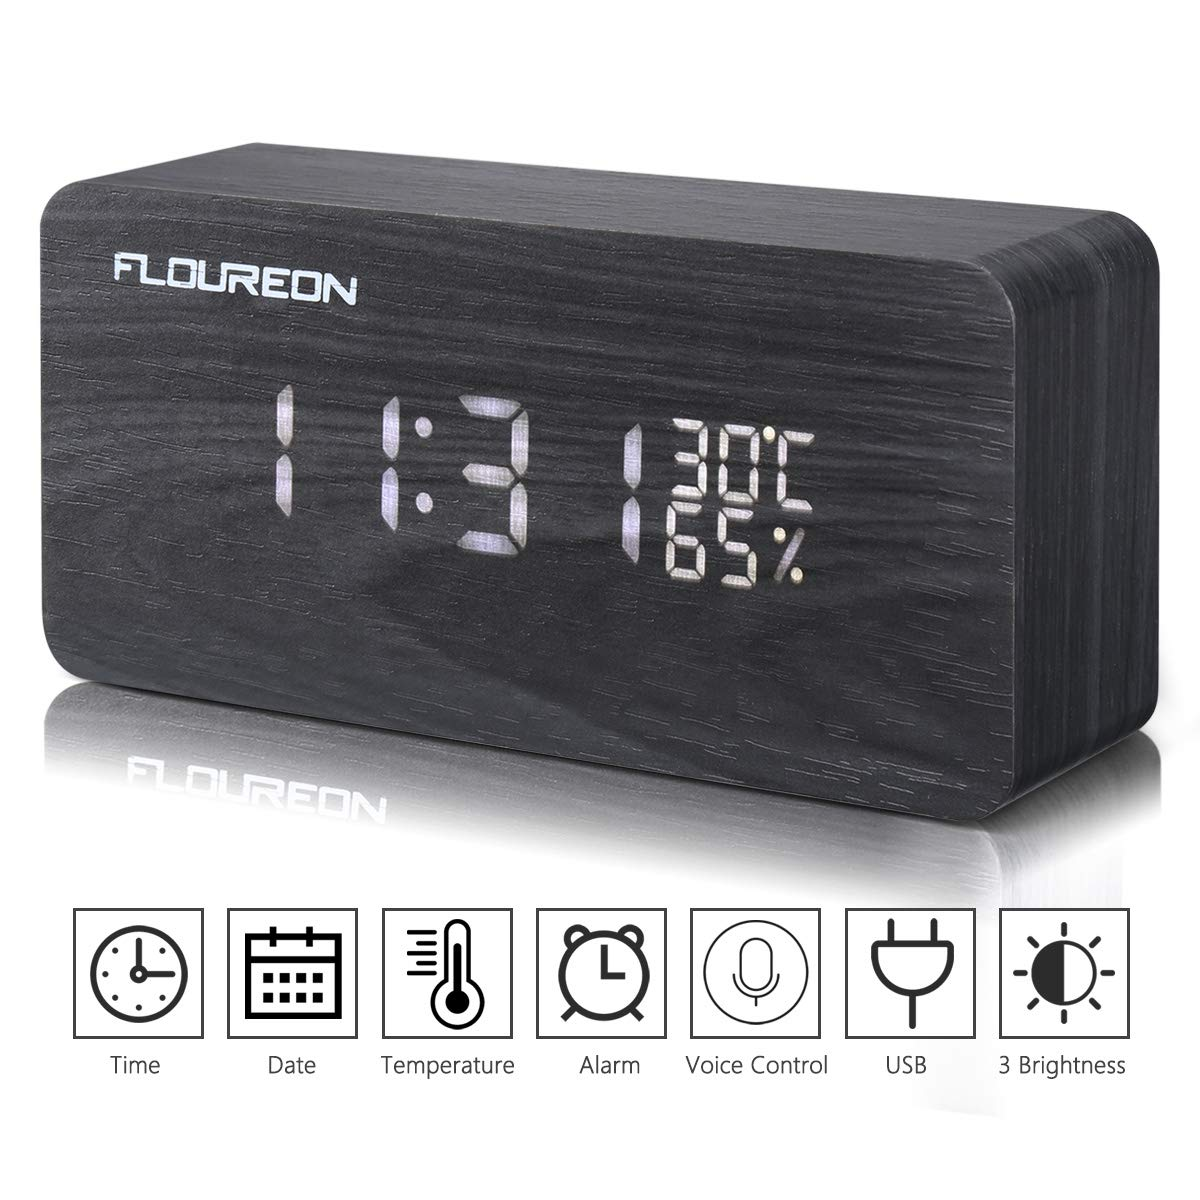 FLOUREON Wooden Alarm Clock LED Desk bedside Digital Clock Calendar/Time/Temperature/Humidity Displaying with 3 Brightness Adjustable and 3 Set of Alarm, Dual Power, Voice Control (Black)